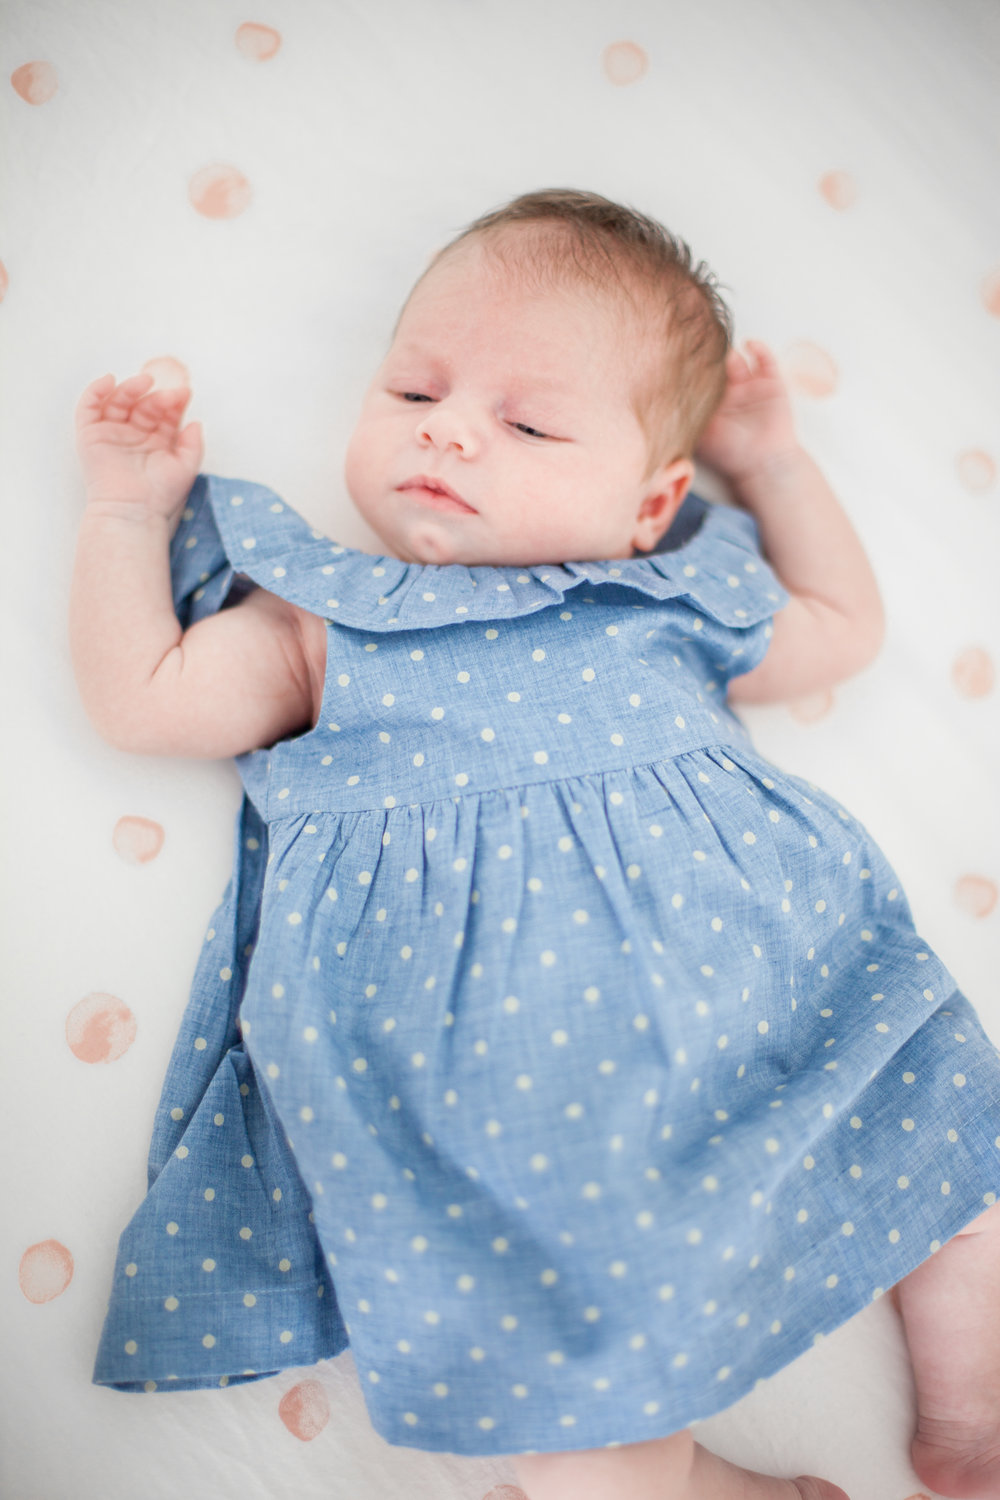 brookhaven-newborn-lifestyle-photography-with-sibling-angela-elliott-wingard-15.jpg